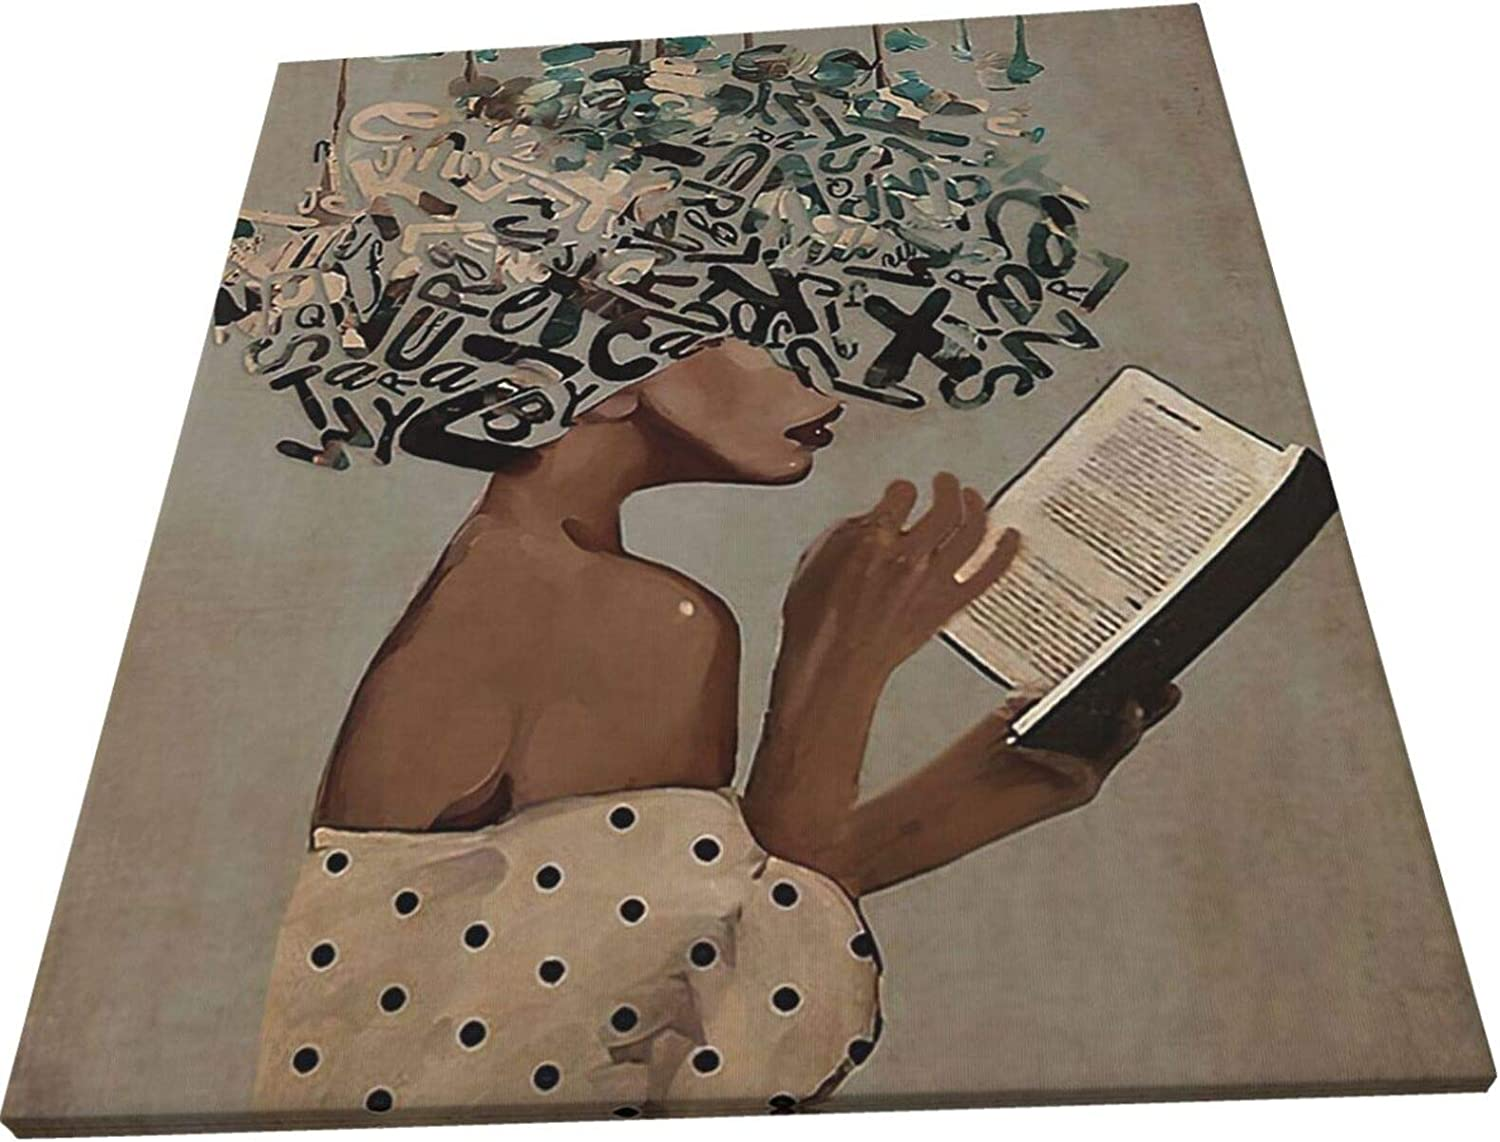 African American Wall Art Abstract Black Girl Drinking Red Wine Modern Decorative Artwork for Bedroom Home Office Framed Ready to Hang